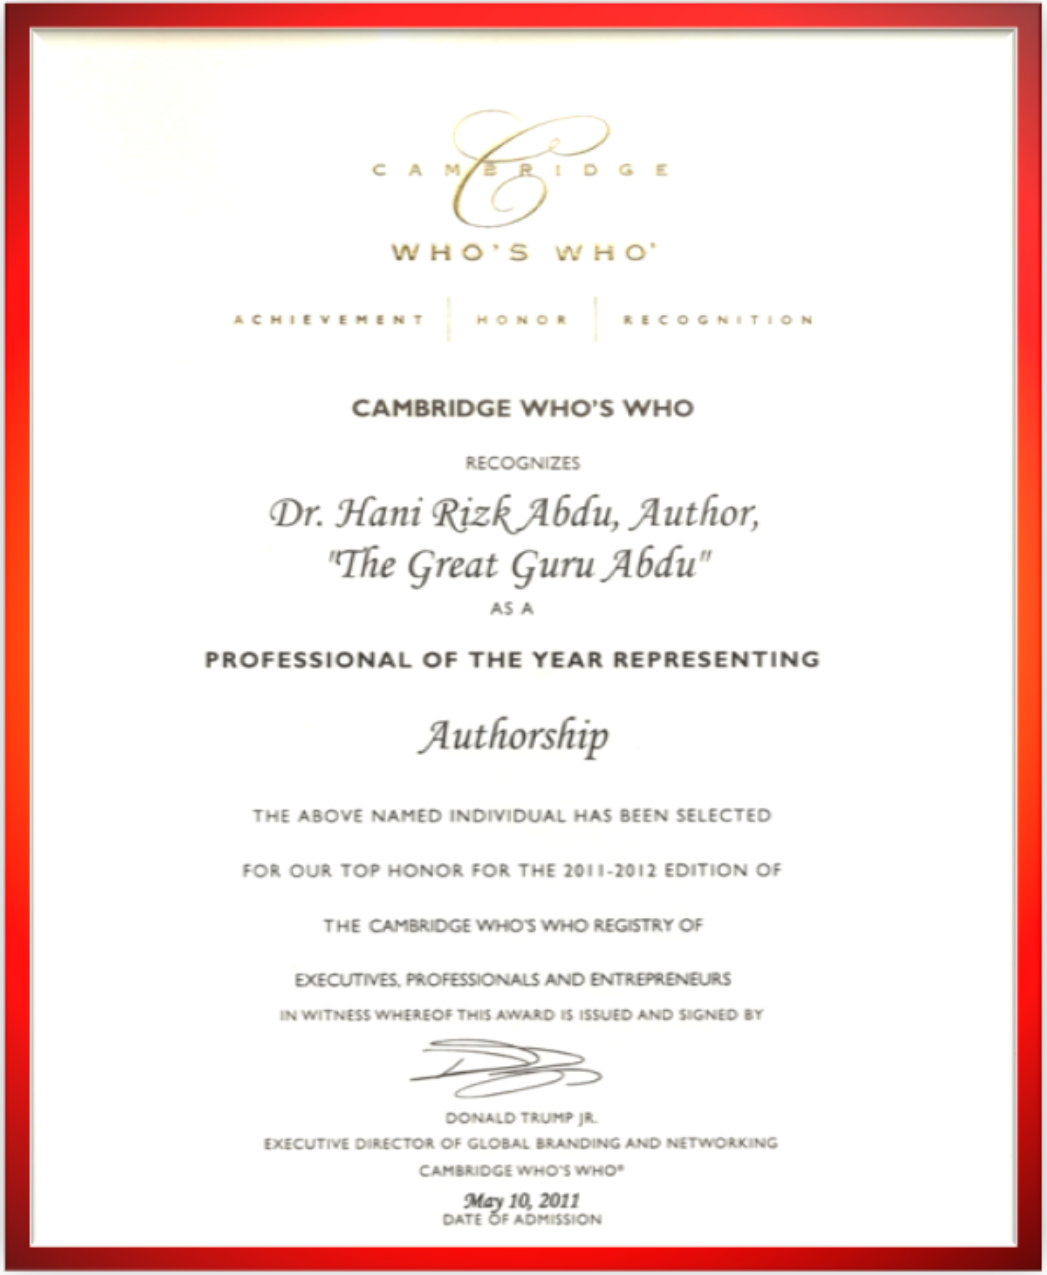 Dr. Hani Abdu - Certificate of the Professional of the Year in Authorship